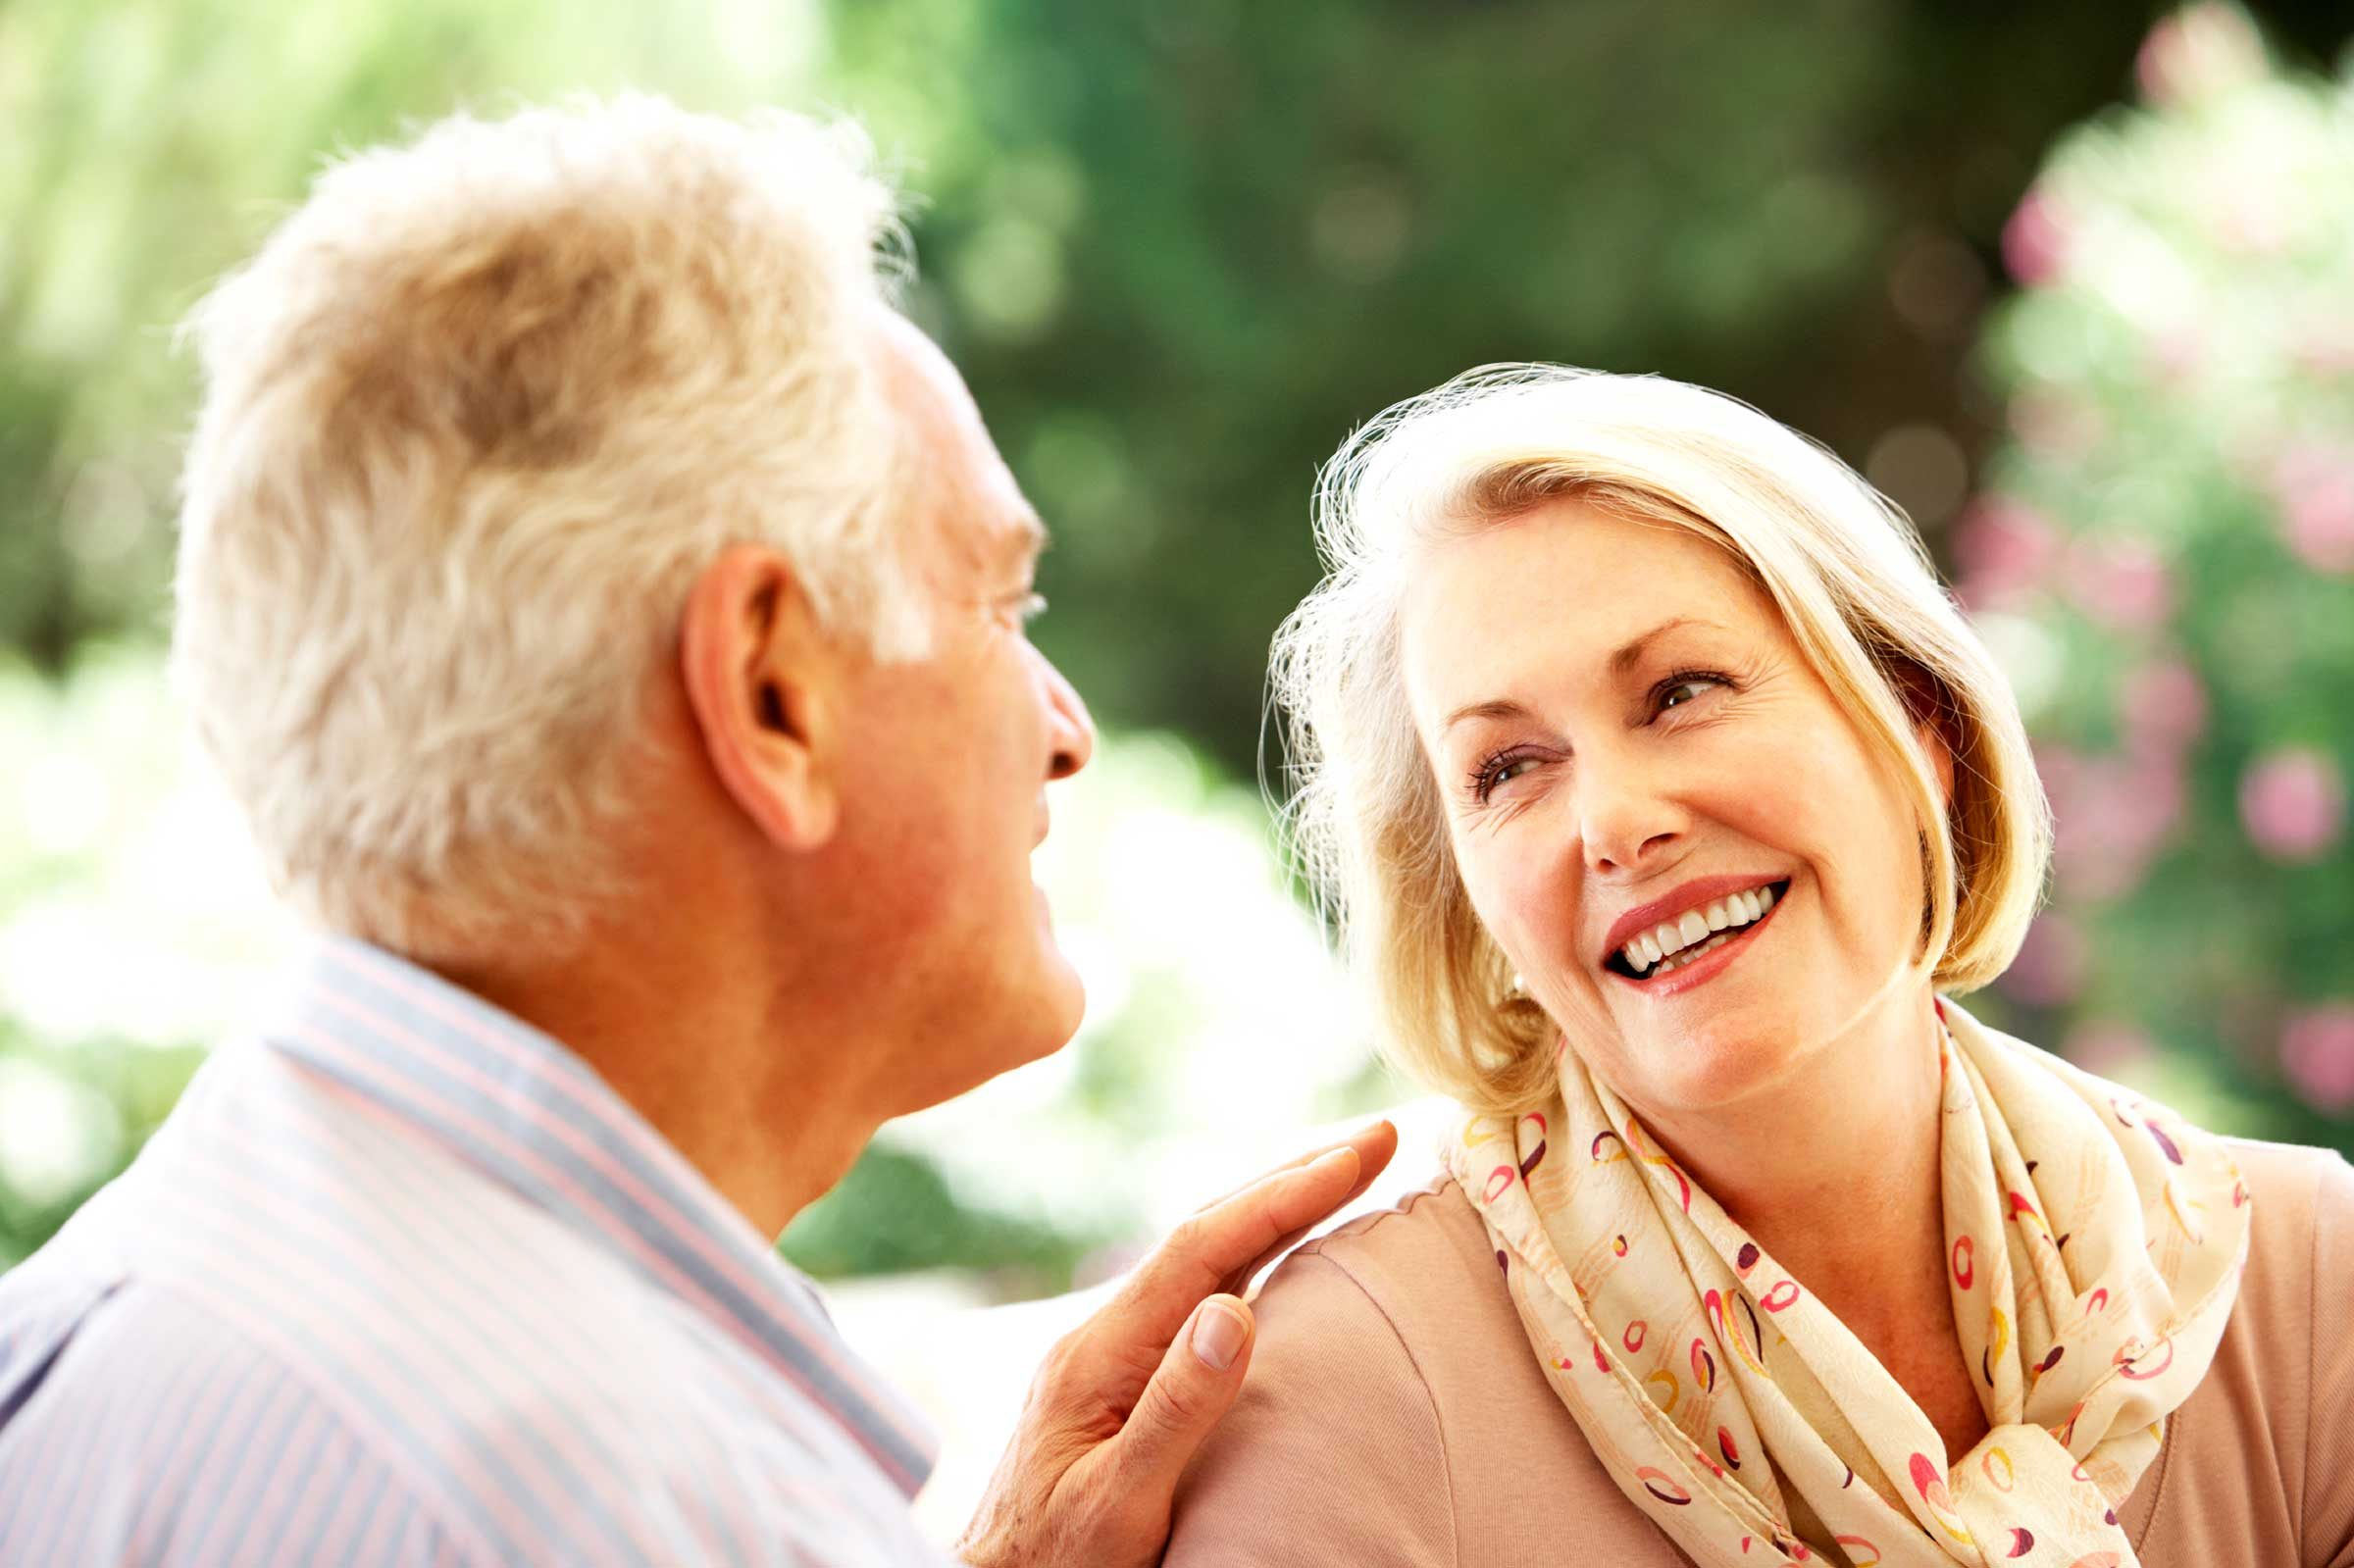 5 lies that are okay to tell your partner reader s digest